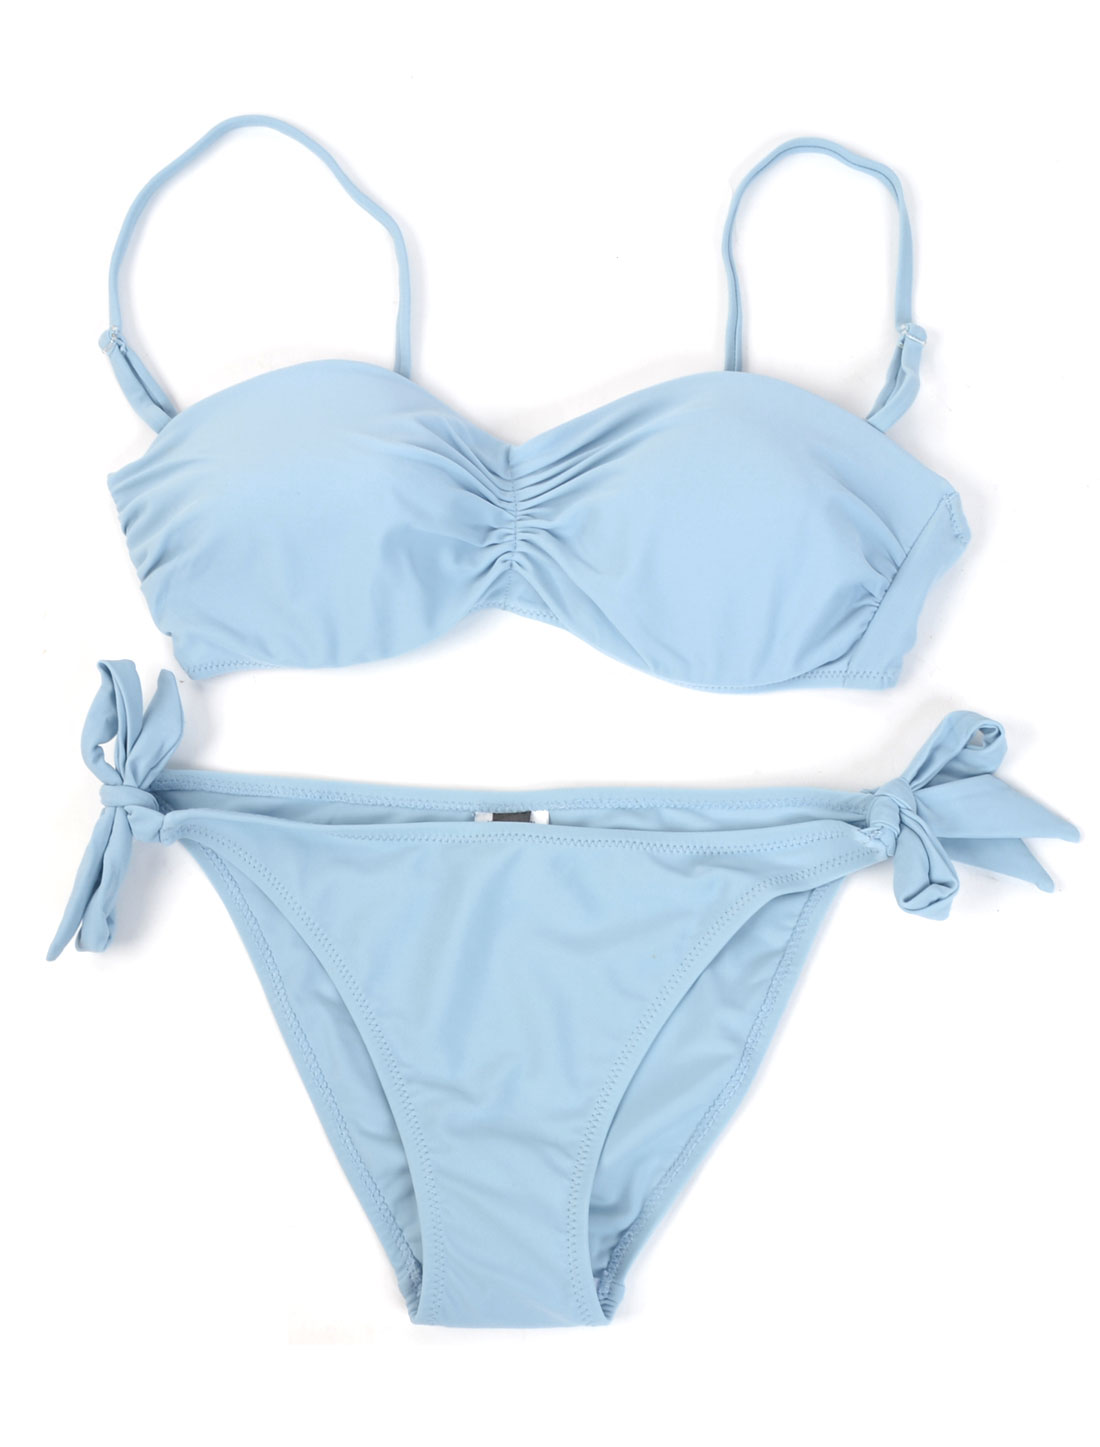 Lady Strap Bikini Bottom + Lightly Pad Underwired Bra Sexy Swimsuit Light Blue L